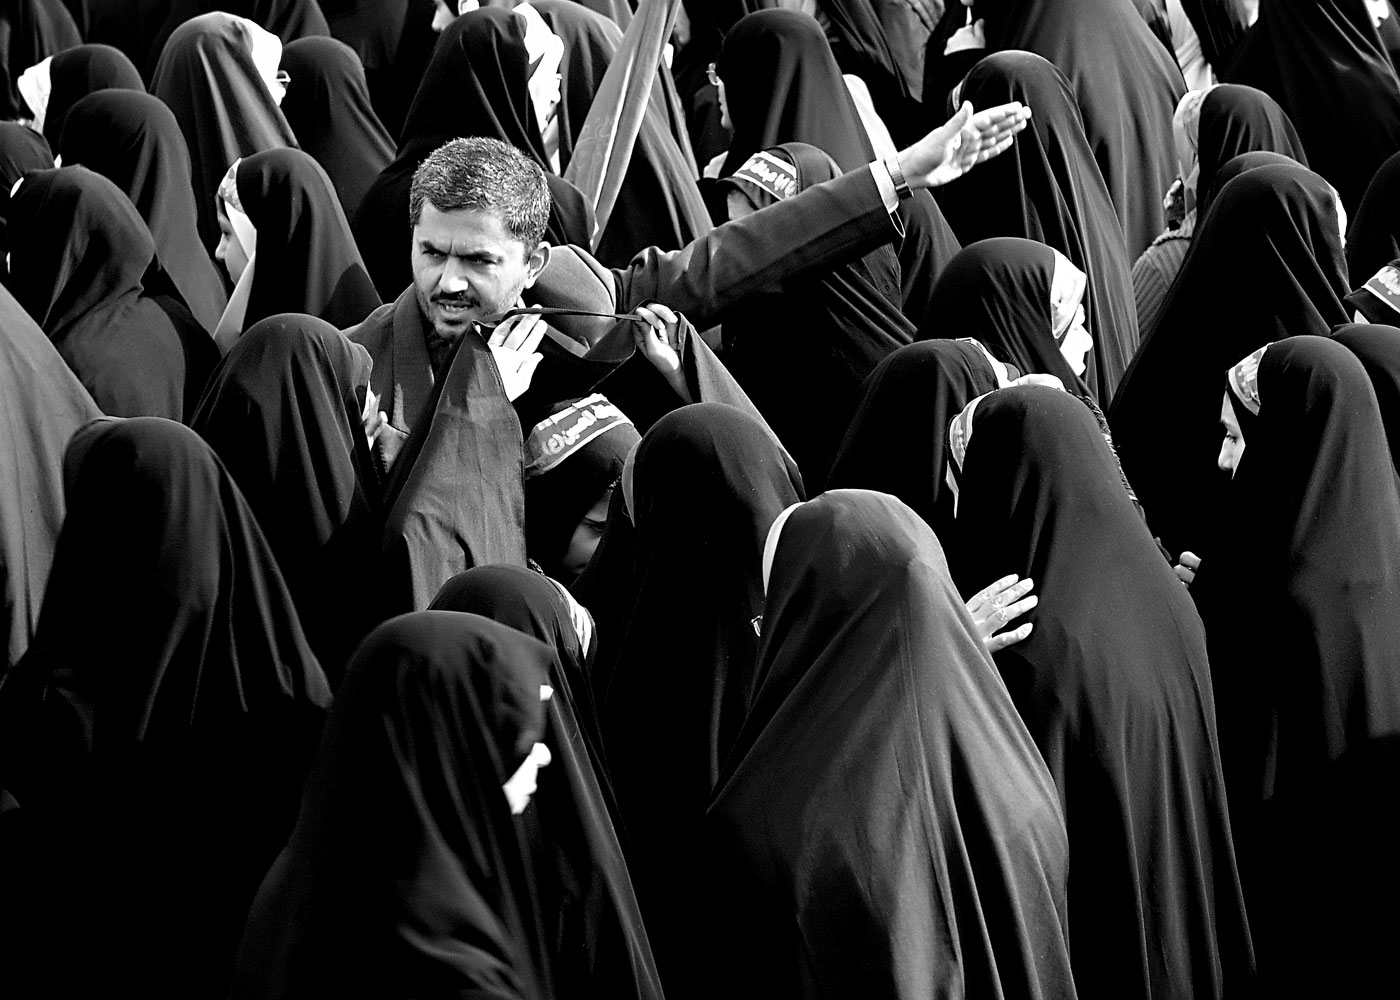 Scholarship winner Pooyan TabatabaeiFebruary 11, 2006. A revolutionary guard tries to rearrange the female crowed at Freedom Square in Tehran during the 26th anniversary of the Islamic Revolution of Iran.